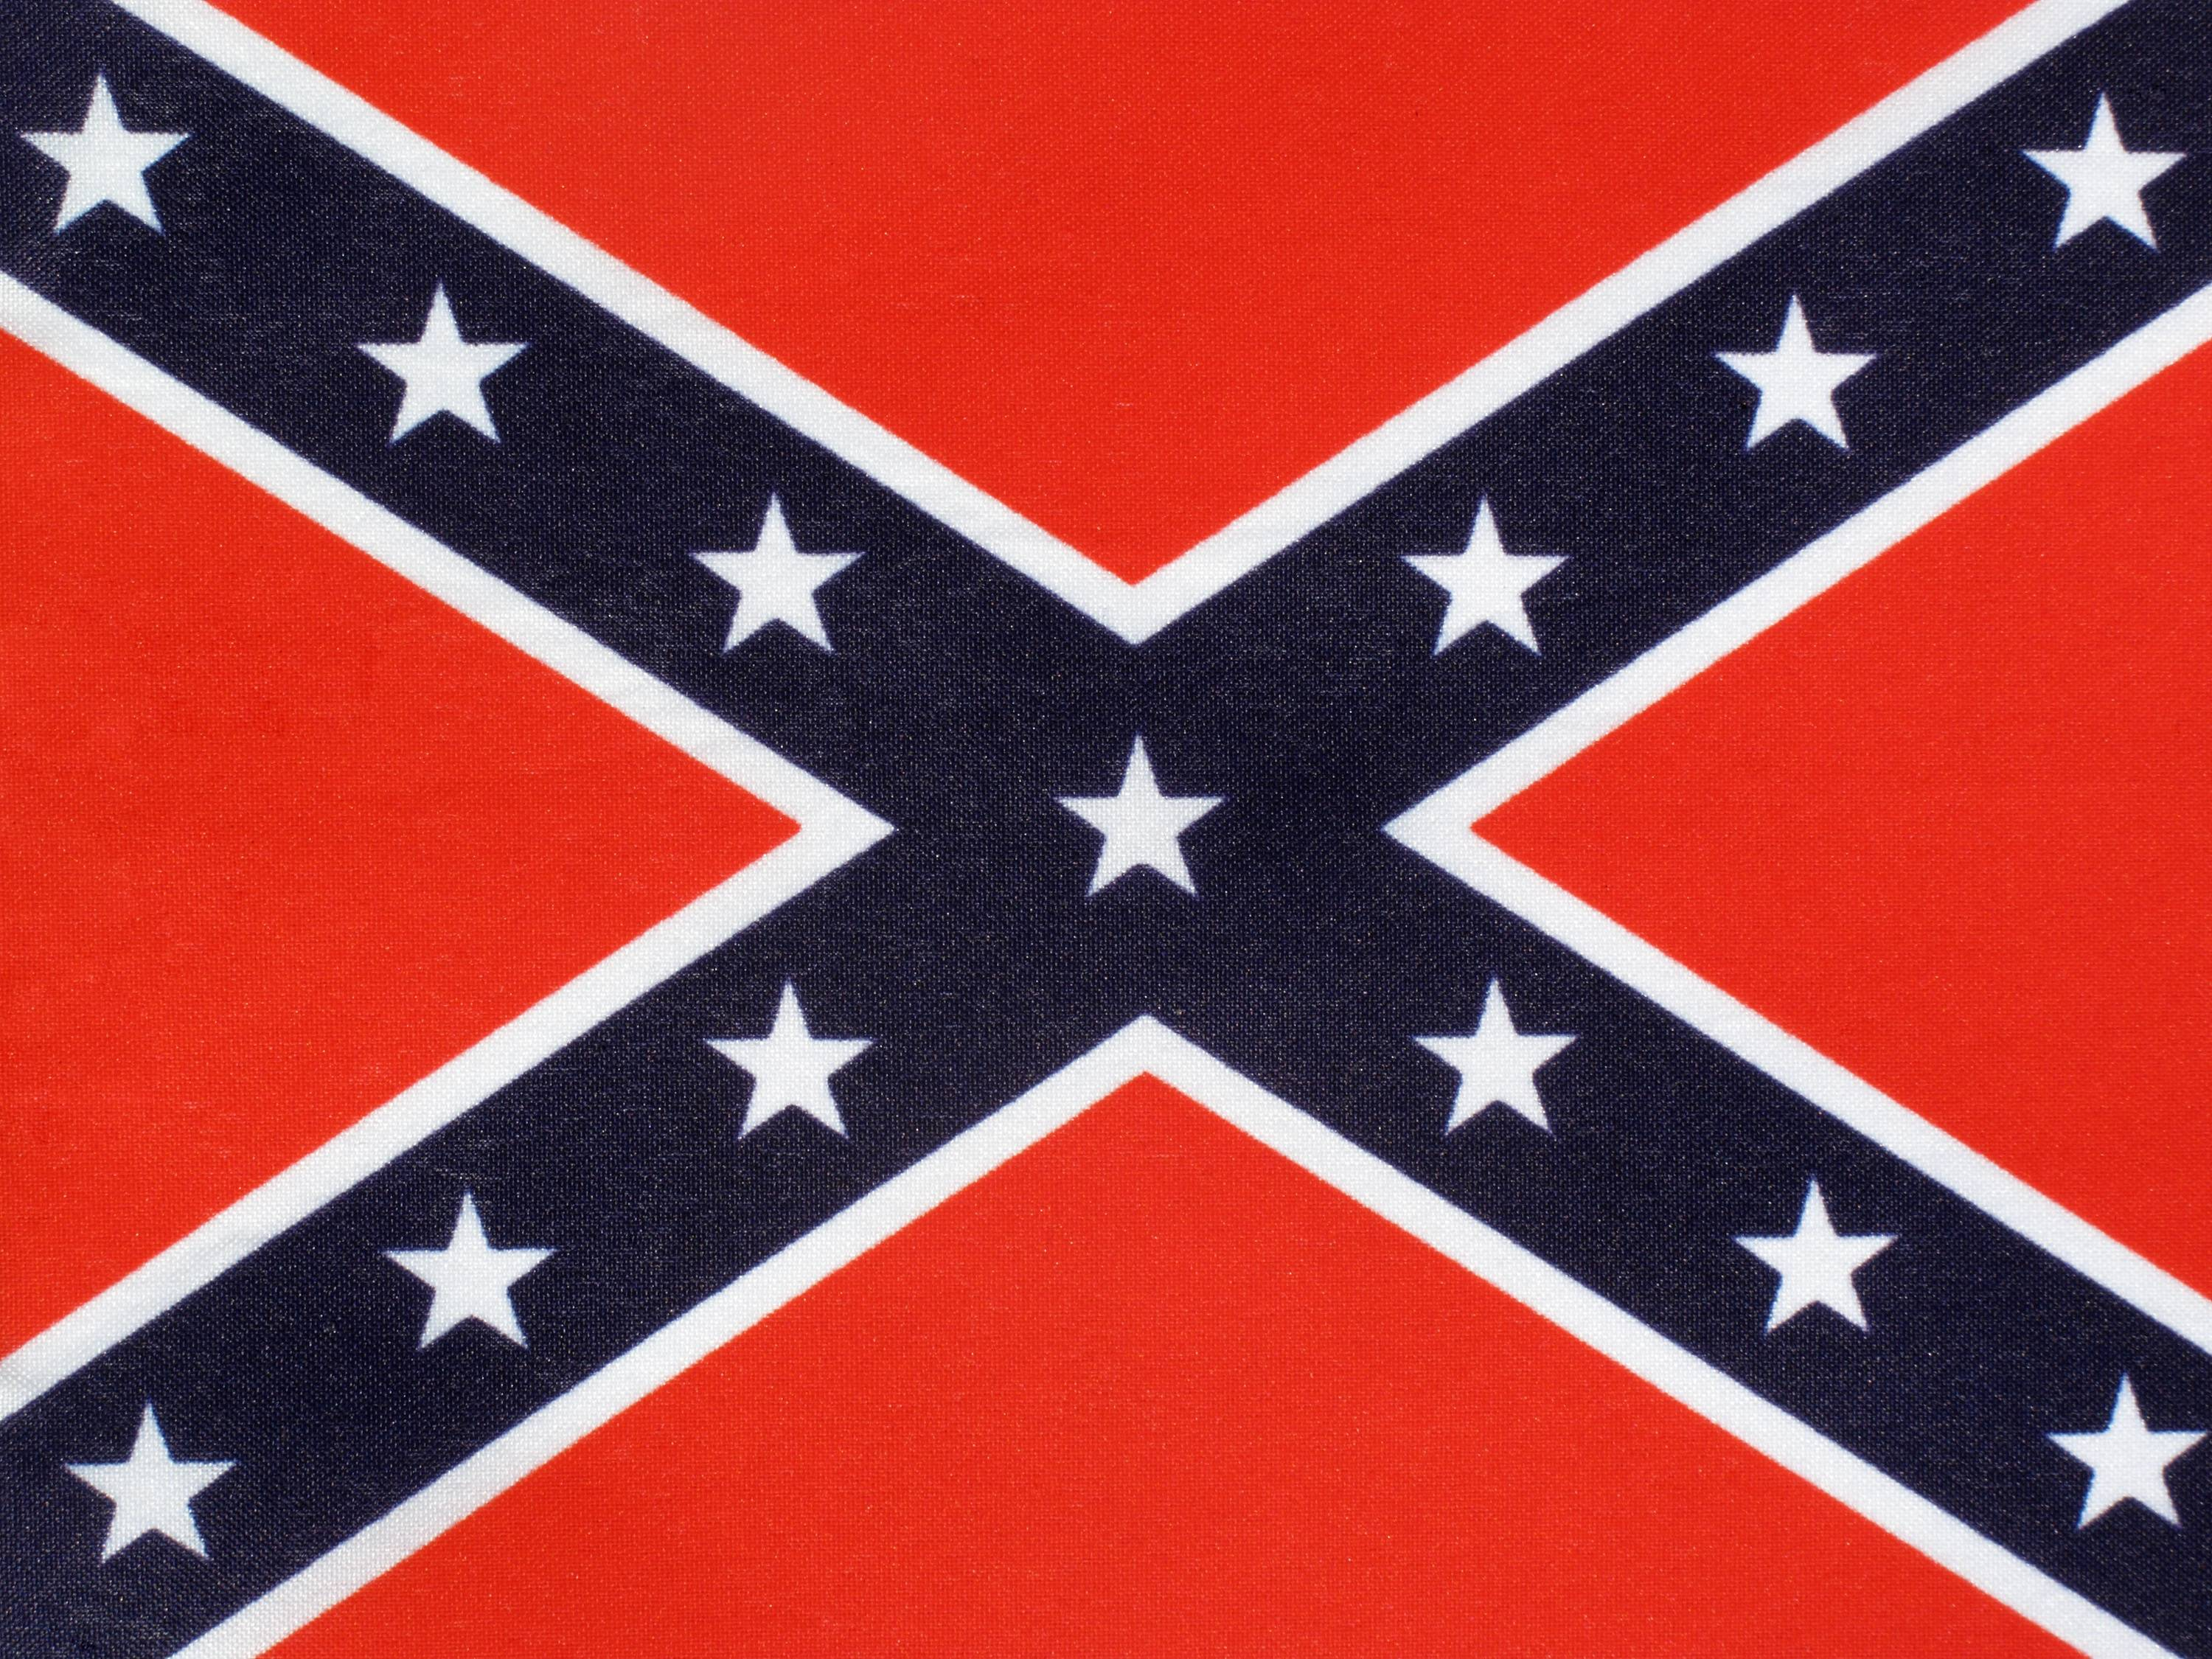 Rebel Flag Wallpaper Free